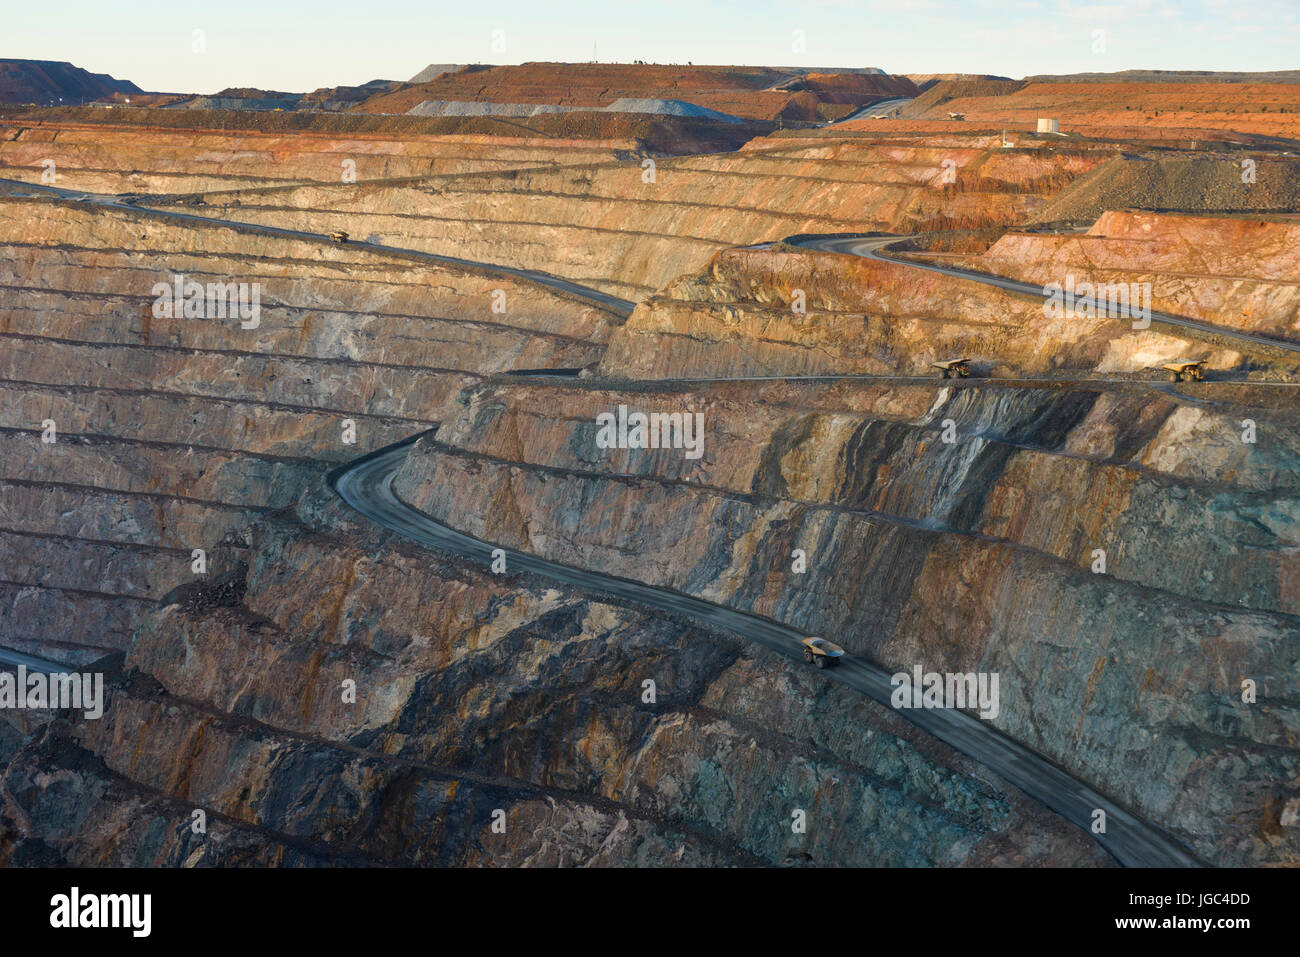 Mine à ciel ouvert, mine d'or, kalgoorlie, Australie occidentale Photo Stock